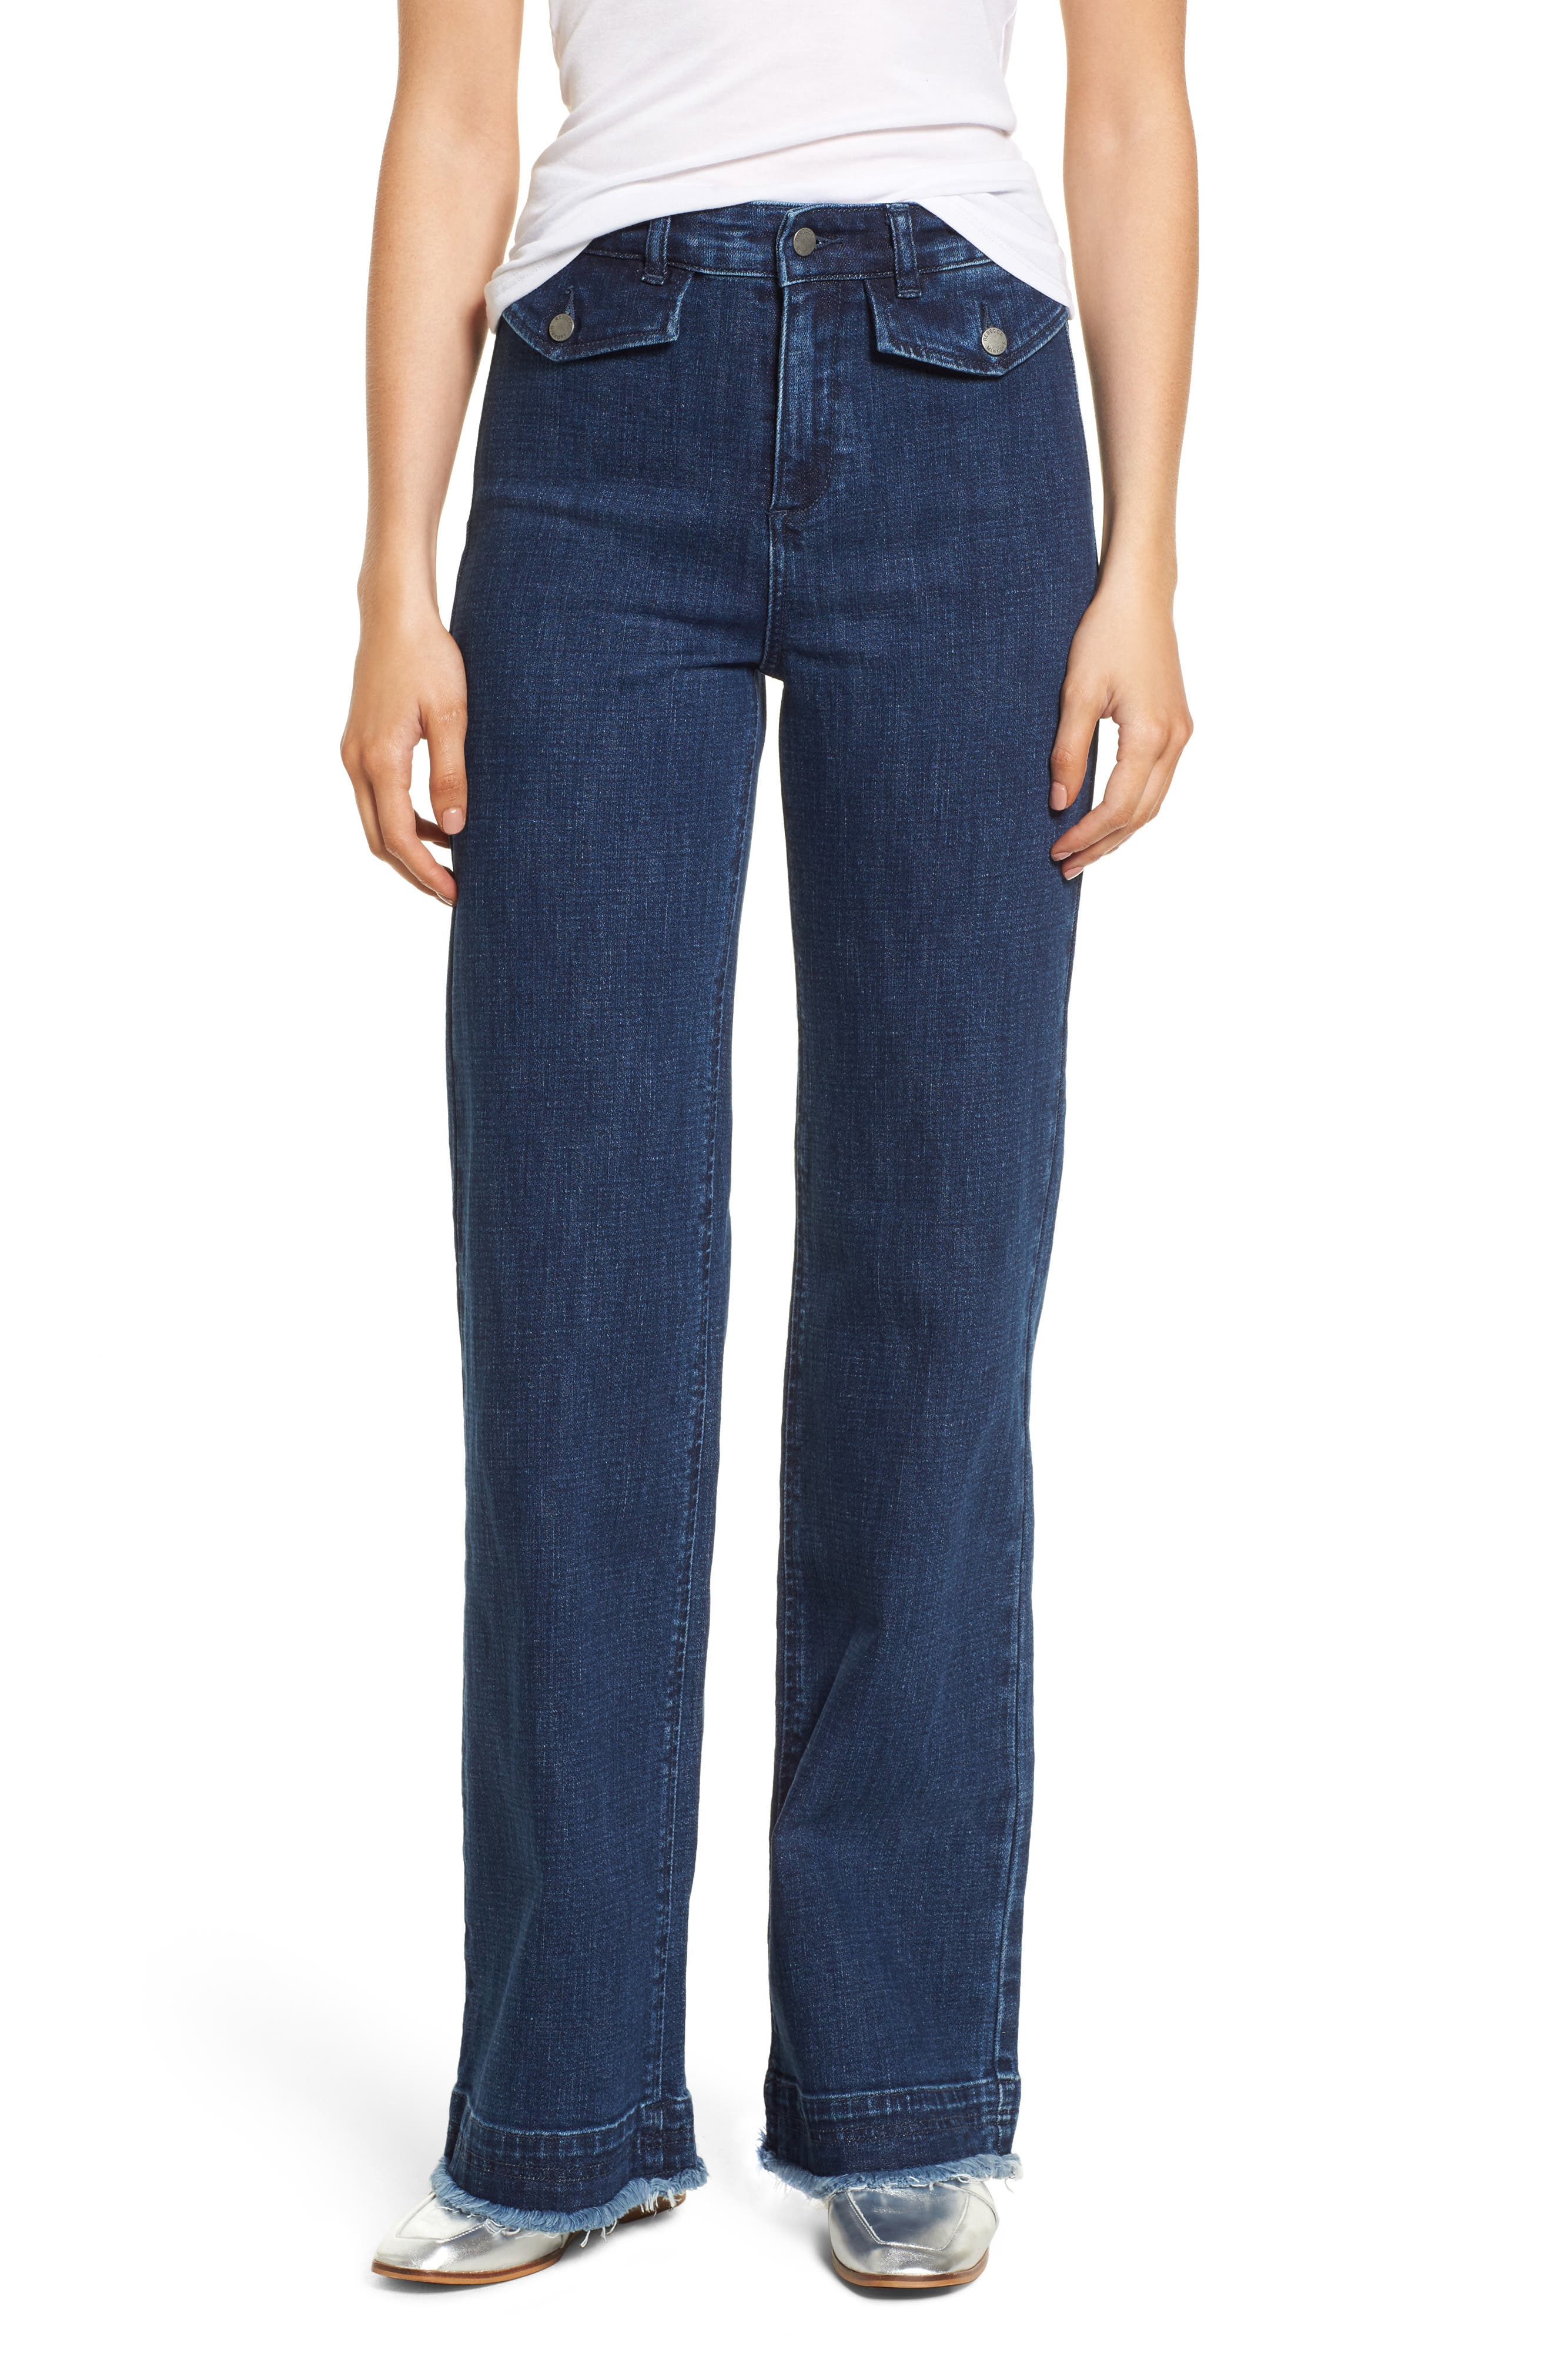 Elwood Wide Leg Jeans,                             Main thumbnail 1, color,                             Indigo